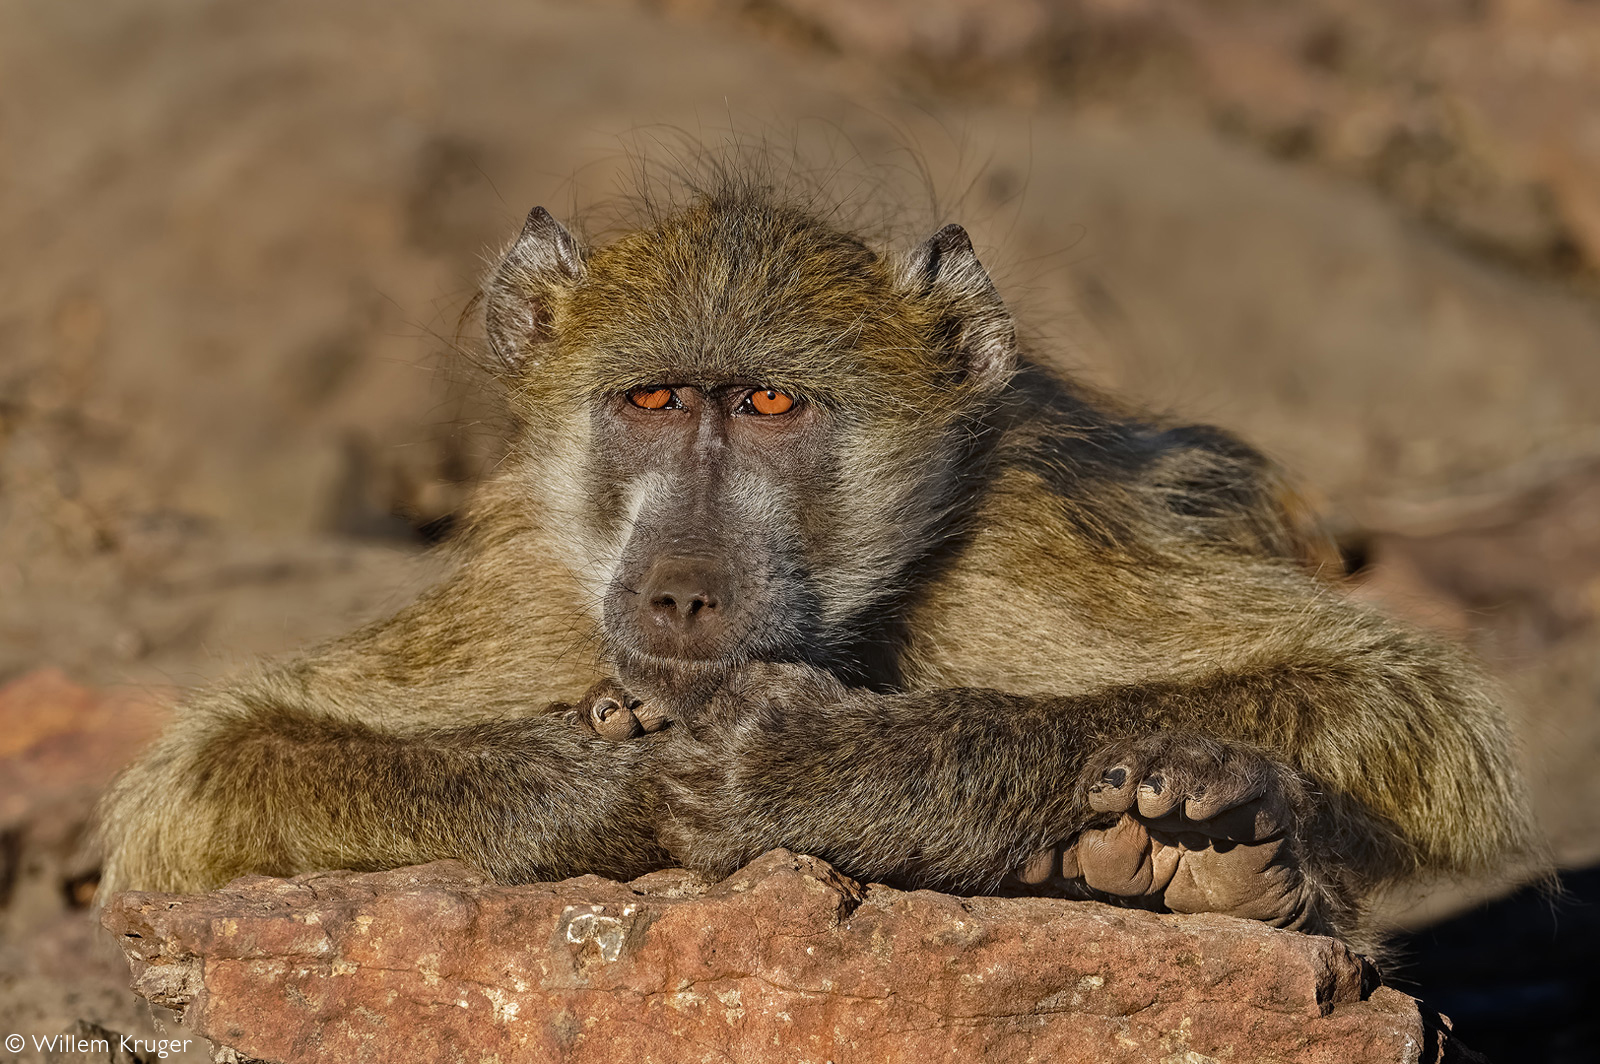 A yellow baboon relaxes on a rock by the Chobe River. Chobe National Park, Botswana © Willem Kruger